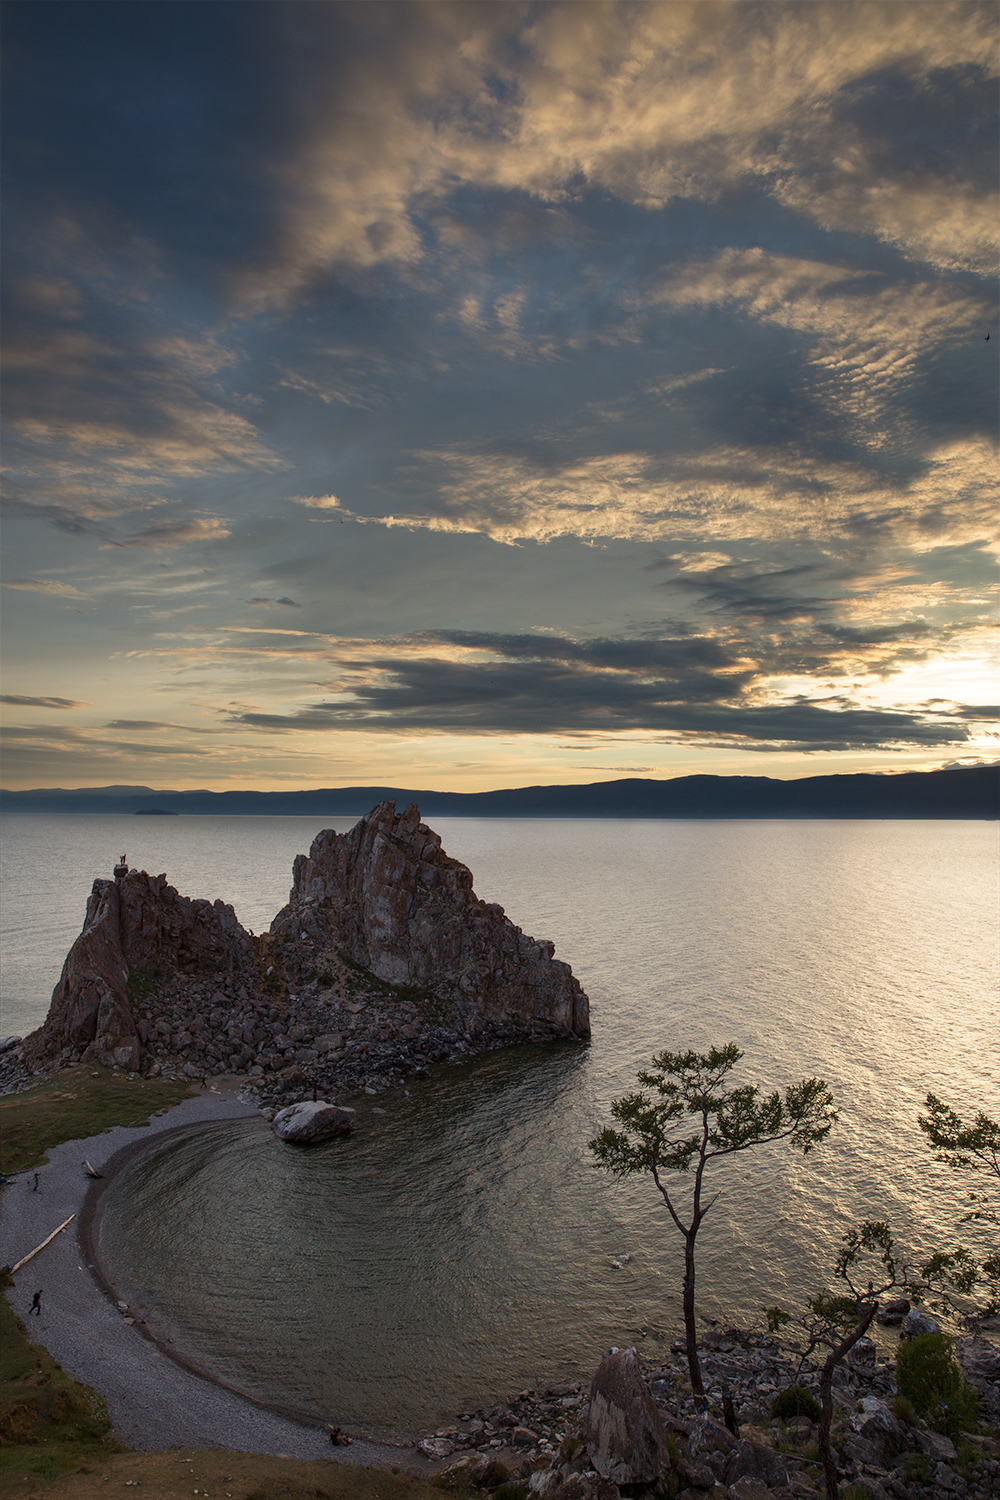 Hushir, Olkhon Island, Lake Baikal, Travel, Backpacking, Russia, Trans Mongolian Railway, Irkutsk, Epiphany Cathedral, Church, Beach, Shaman Rock,